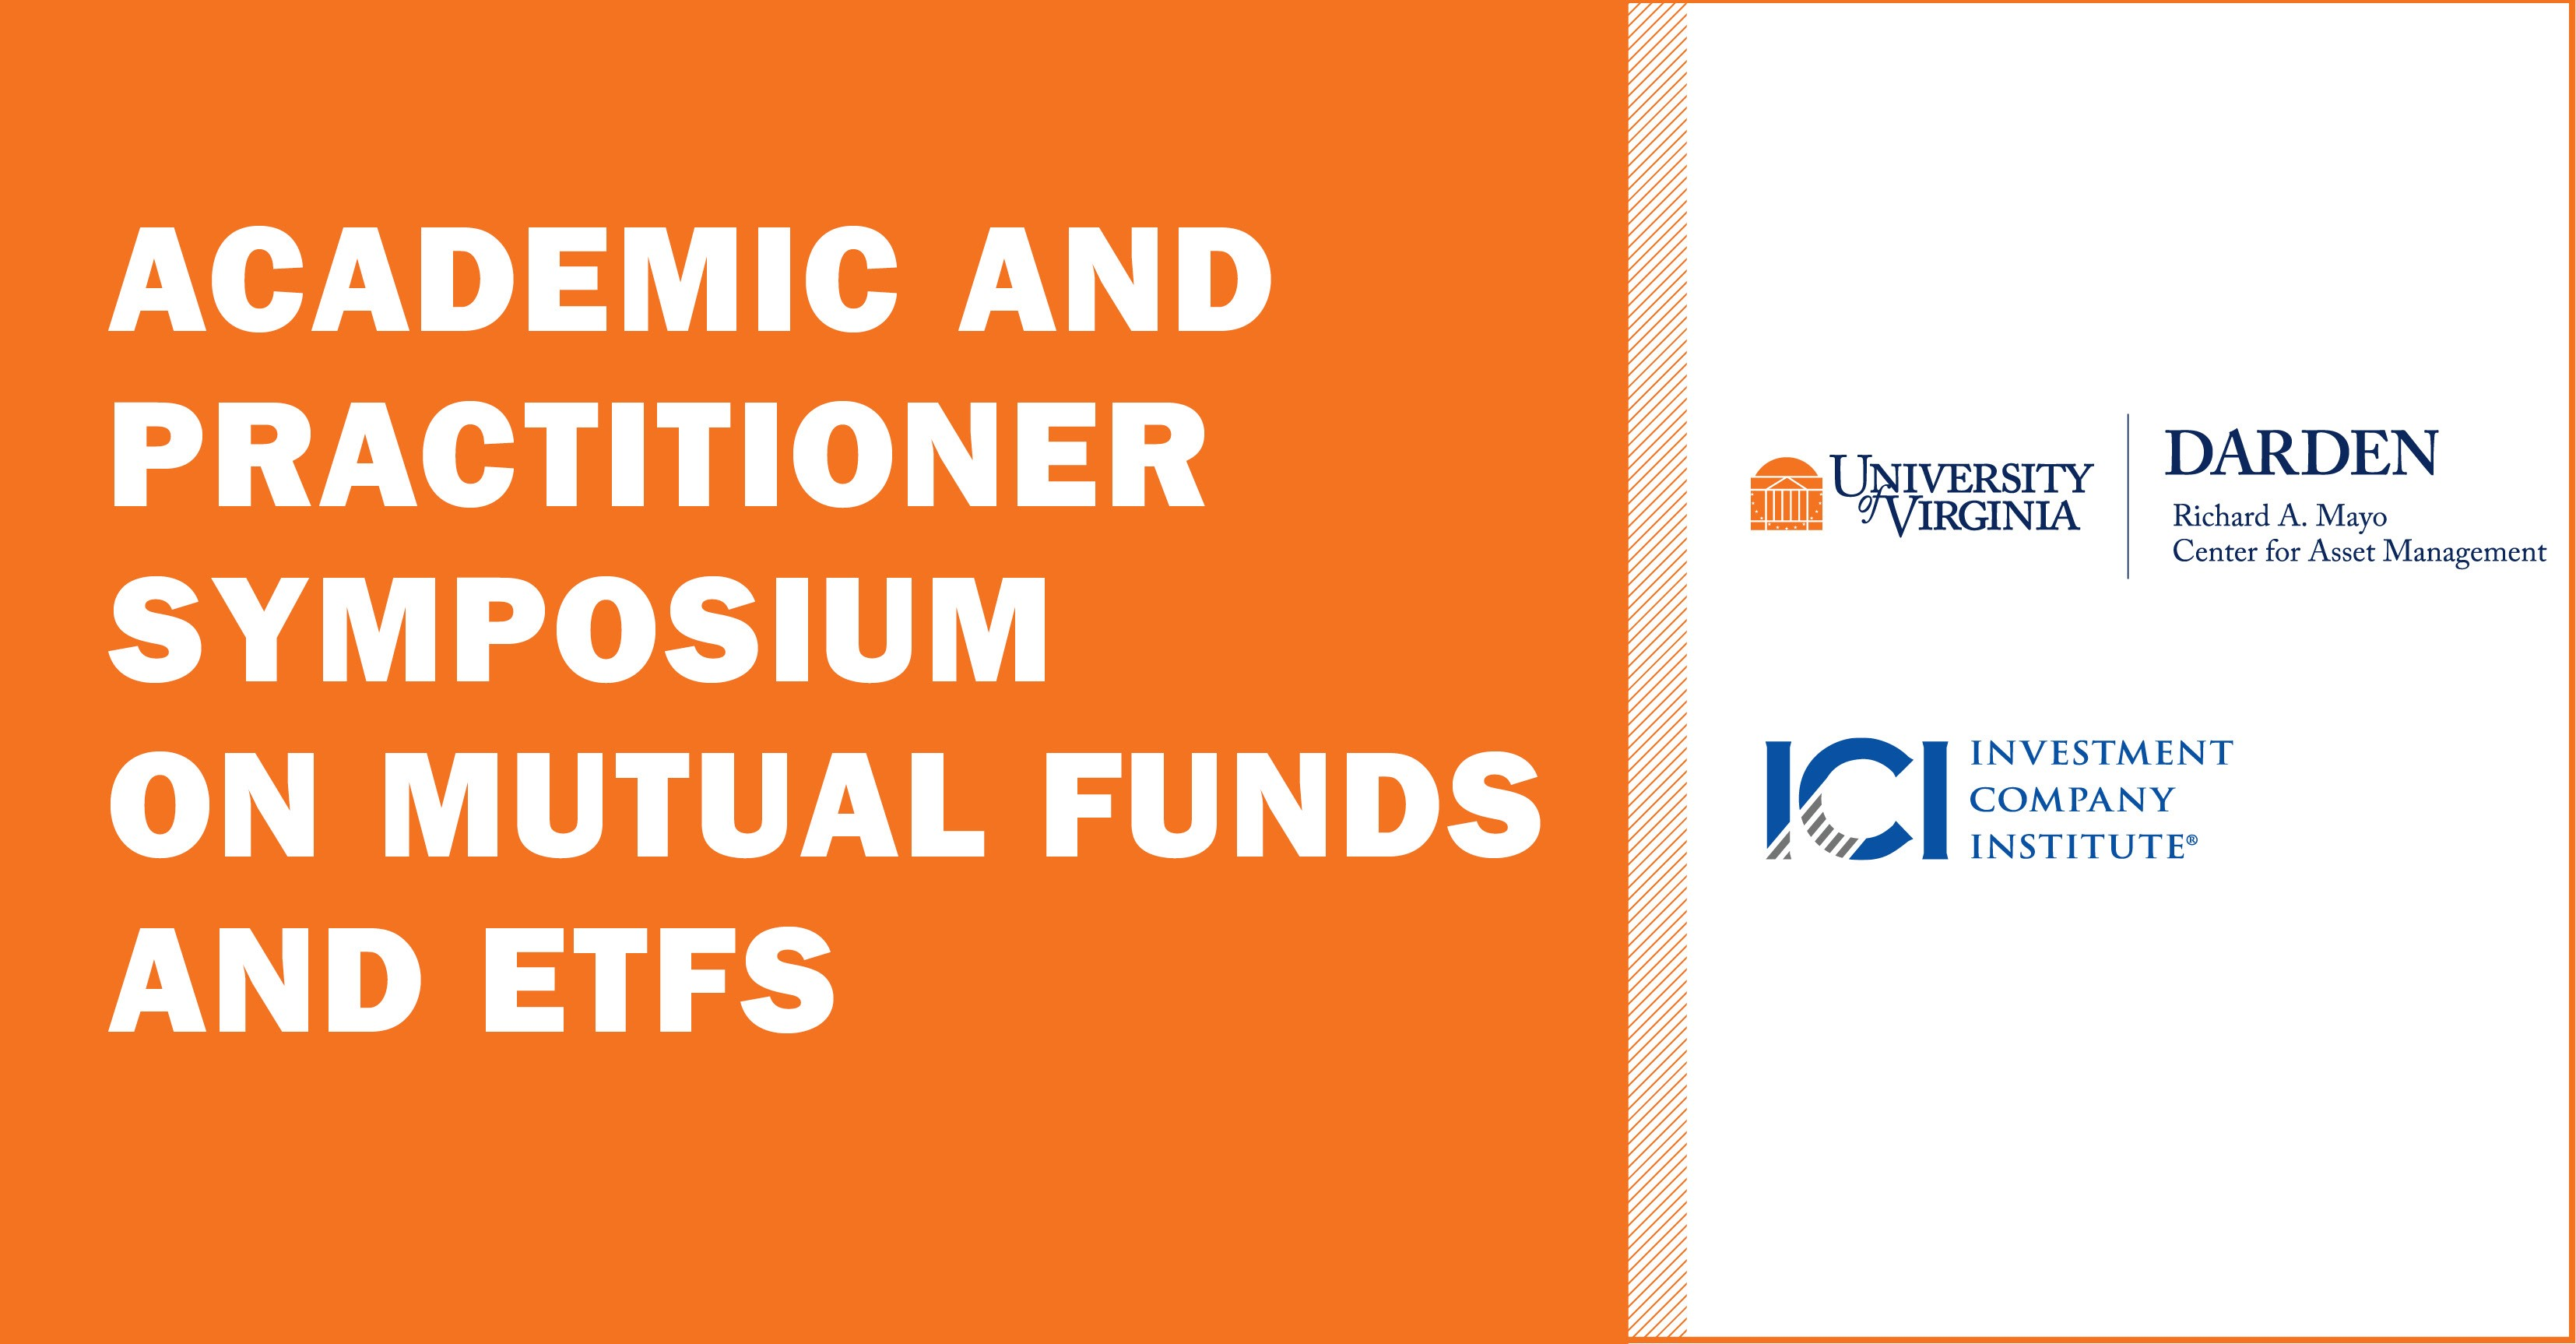 Academic and Practitioner Symposium on Mutual Funds and ETFs